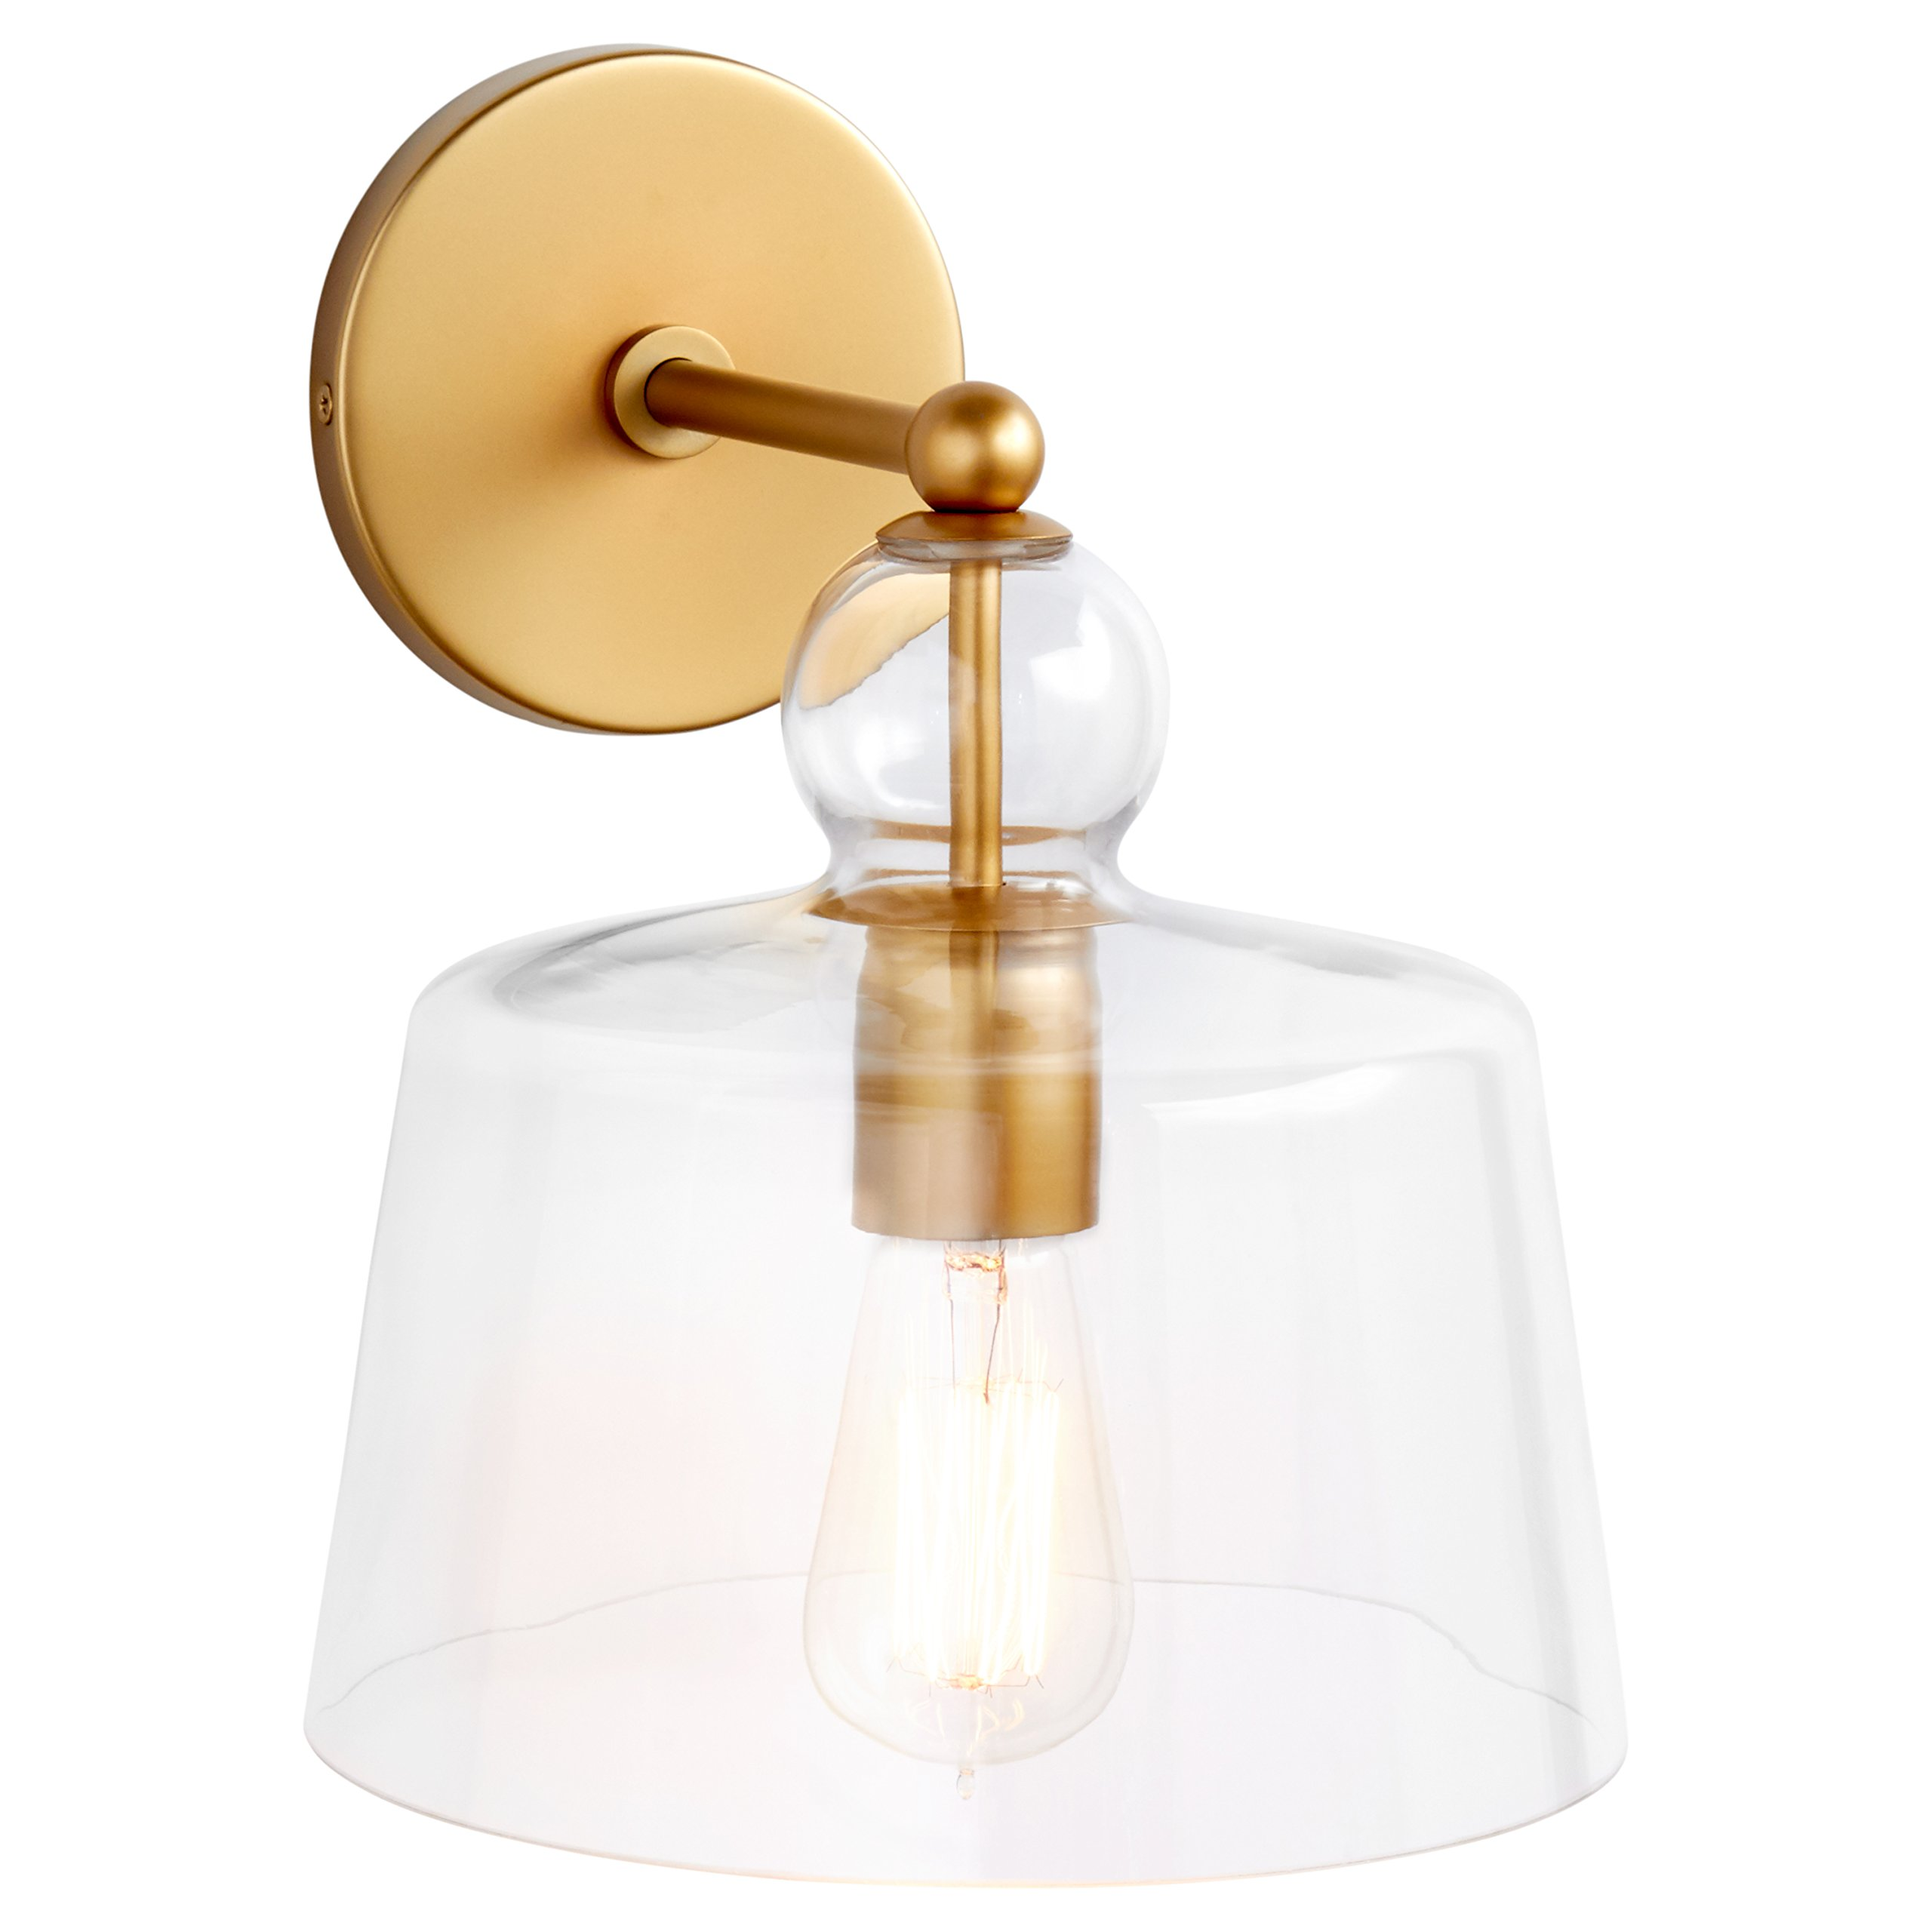 Stone & Beam Modern Metal Sconce, with Bulb, Glass Shade